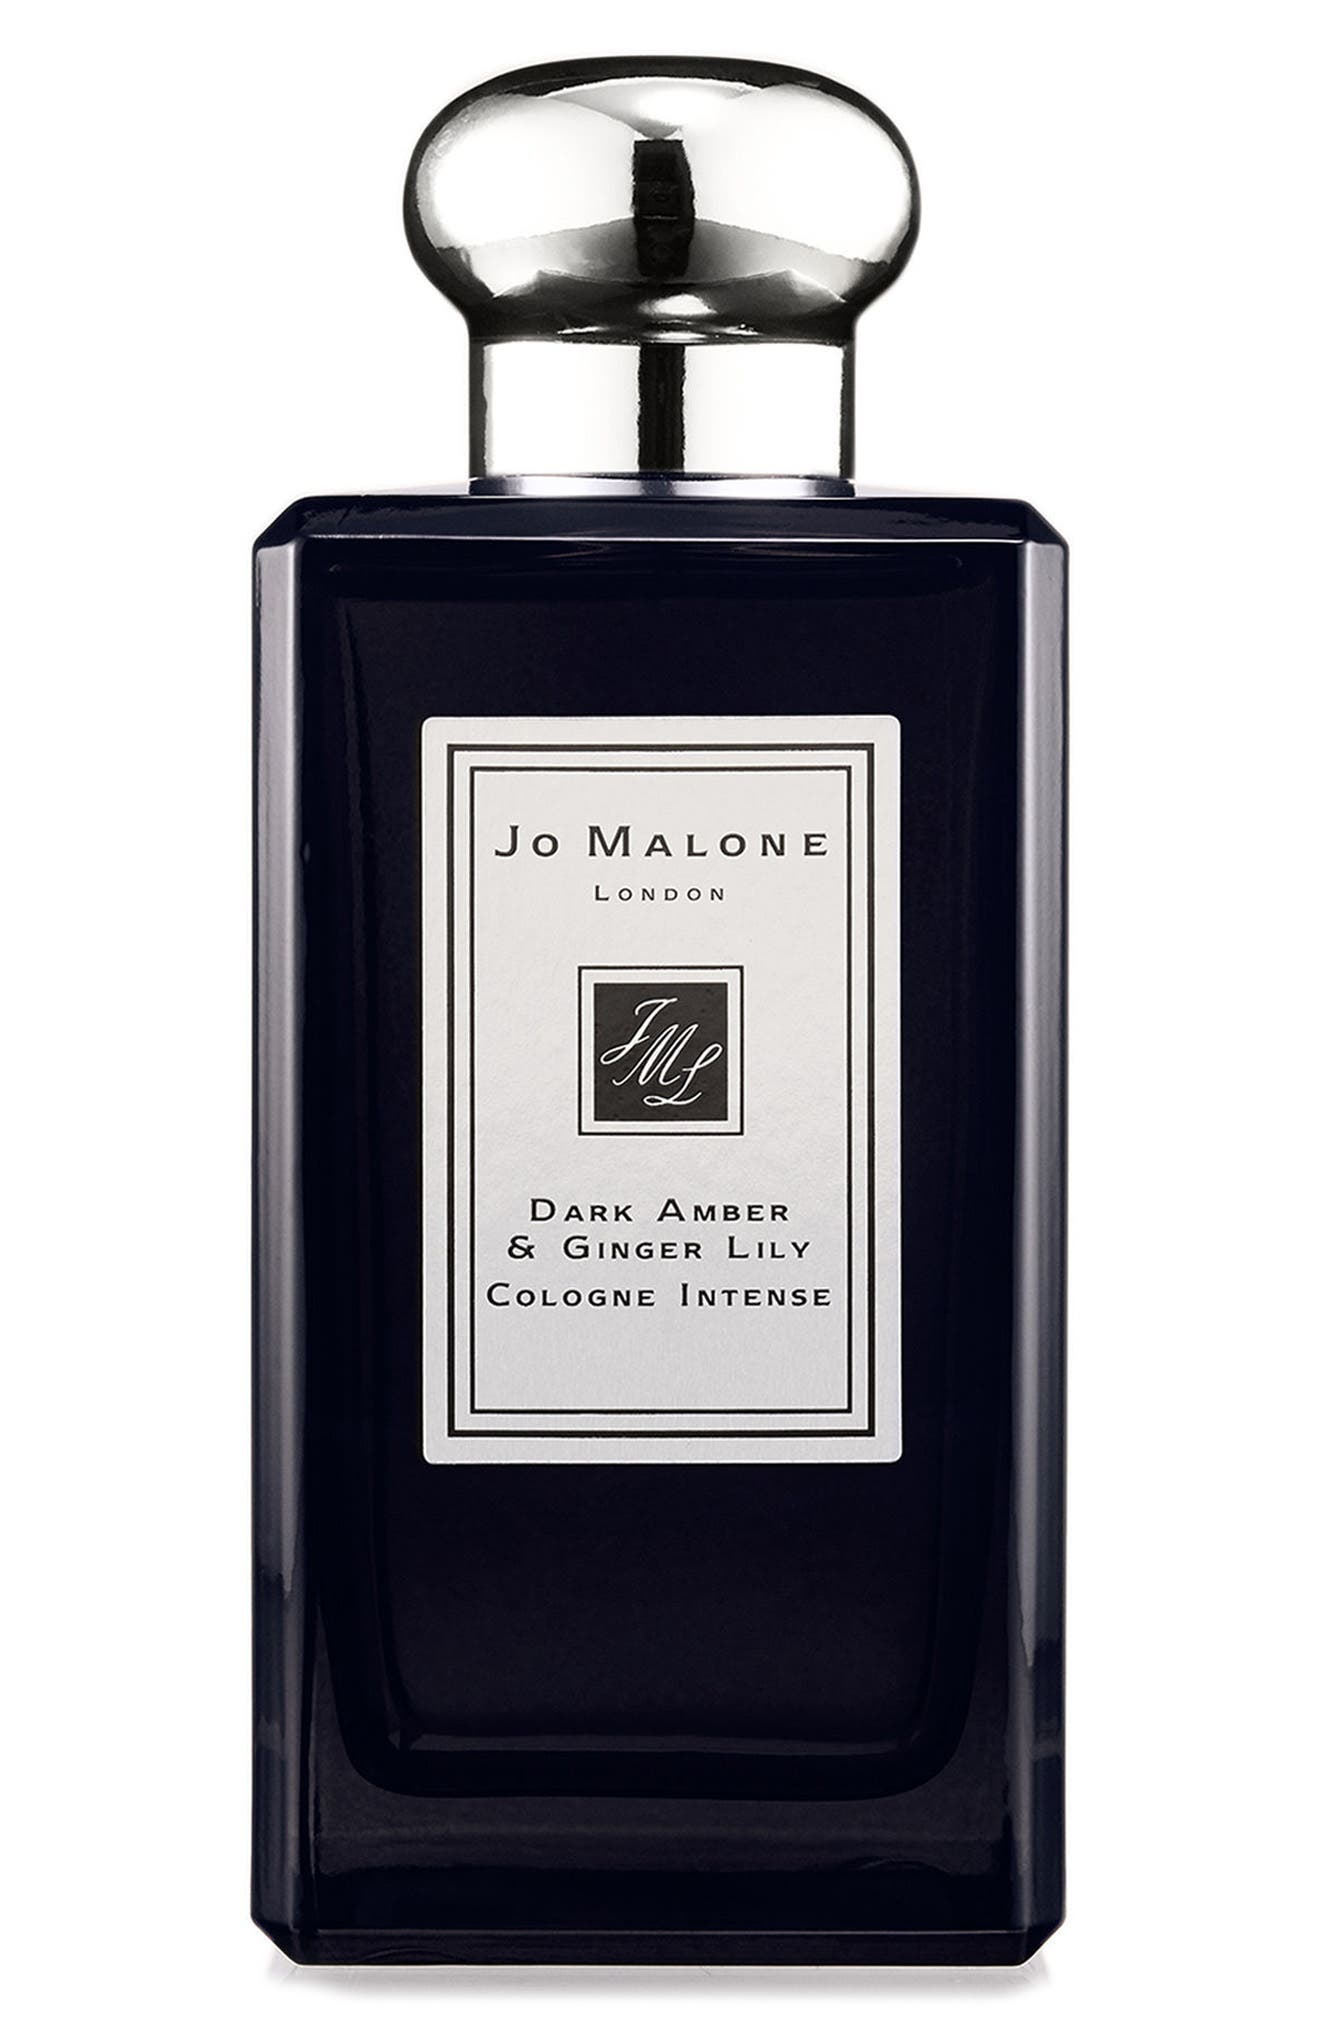 Jo Malone London™ 'Dark Amber & Ginger Lily' Cologne Intense